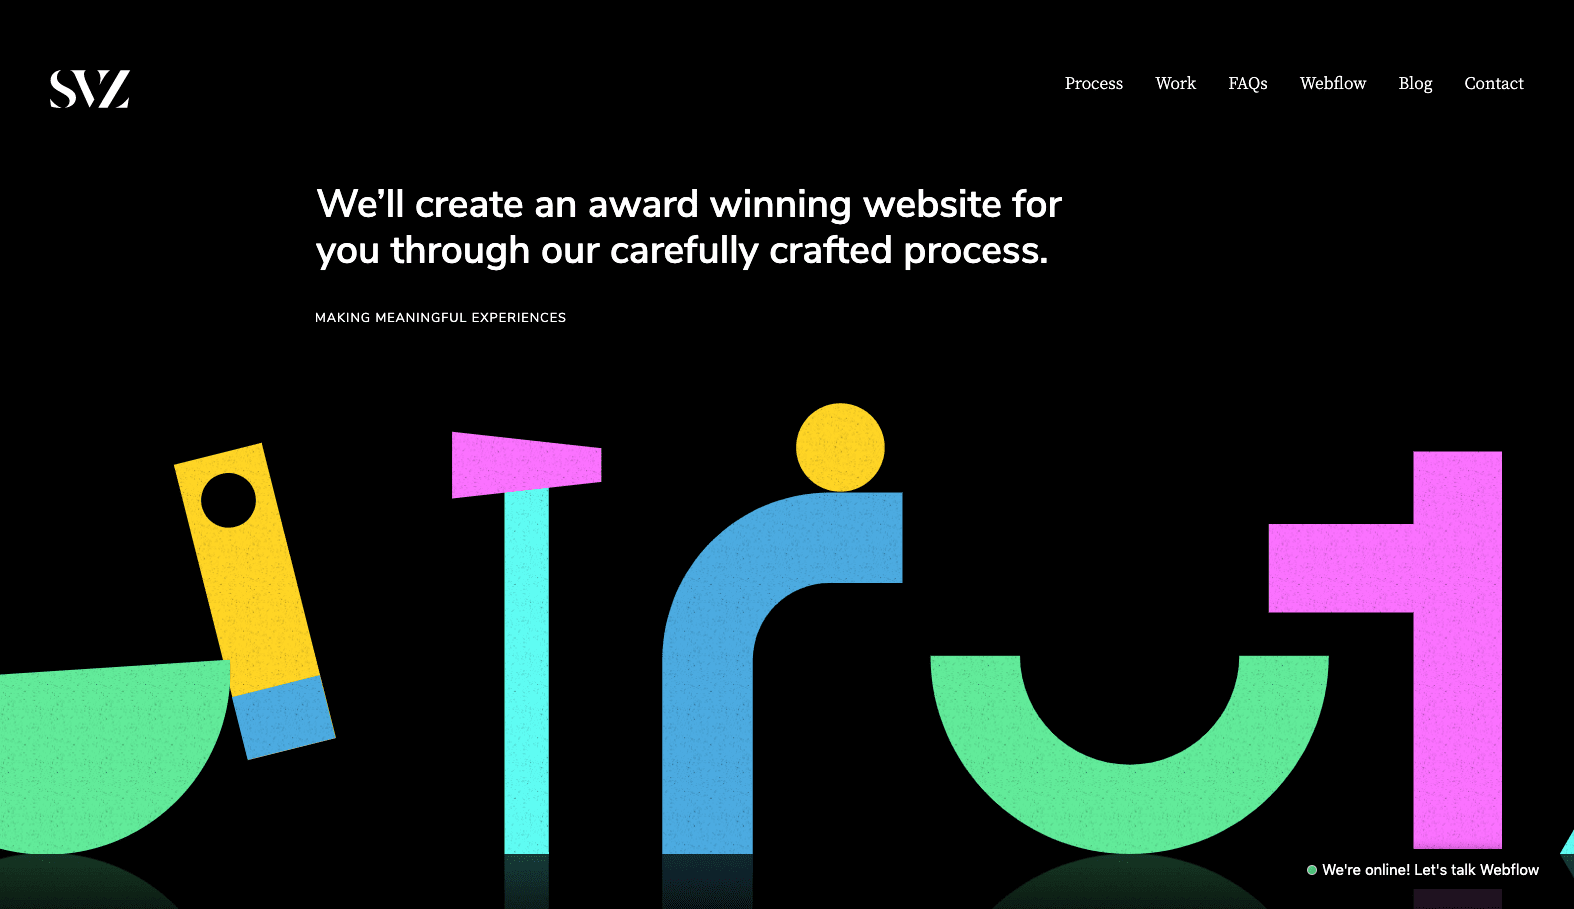 A screenshot of SVZ's awesome agency website